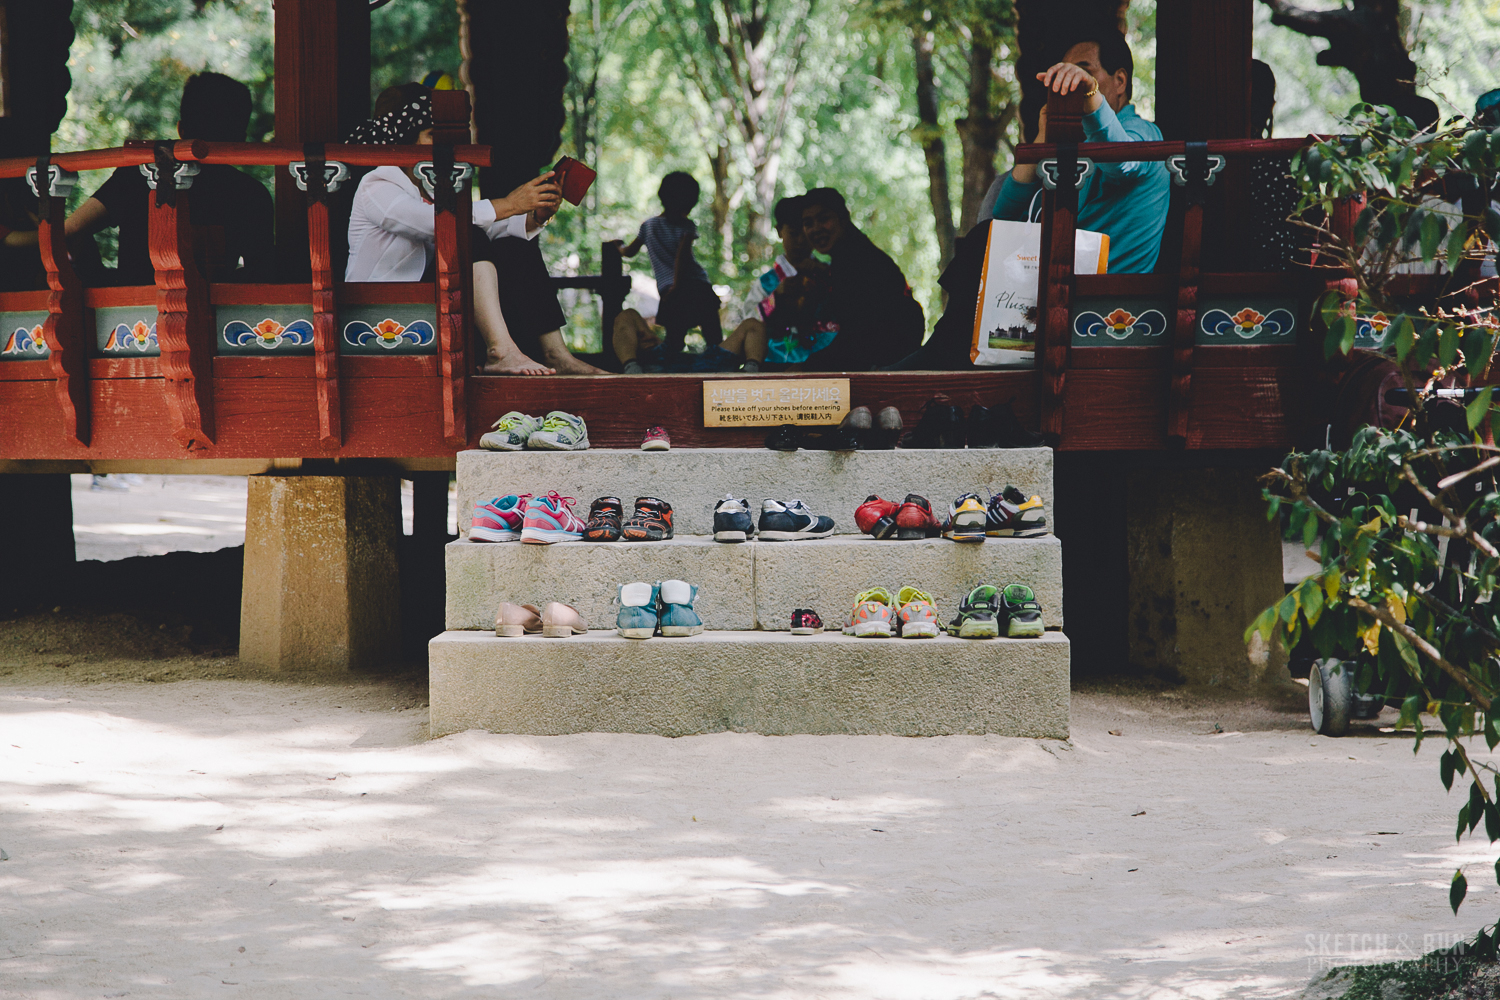 Shoes Korean Folk Village